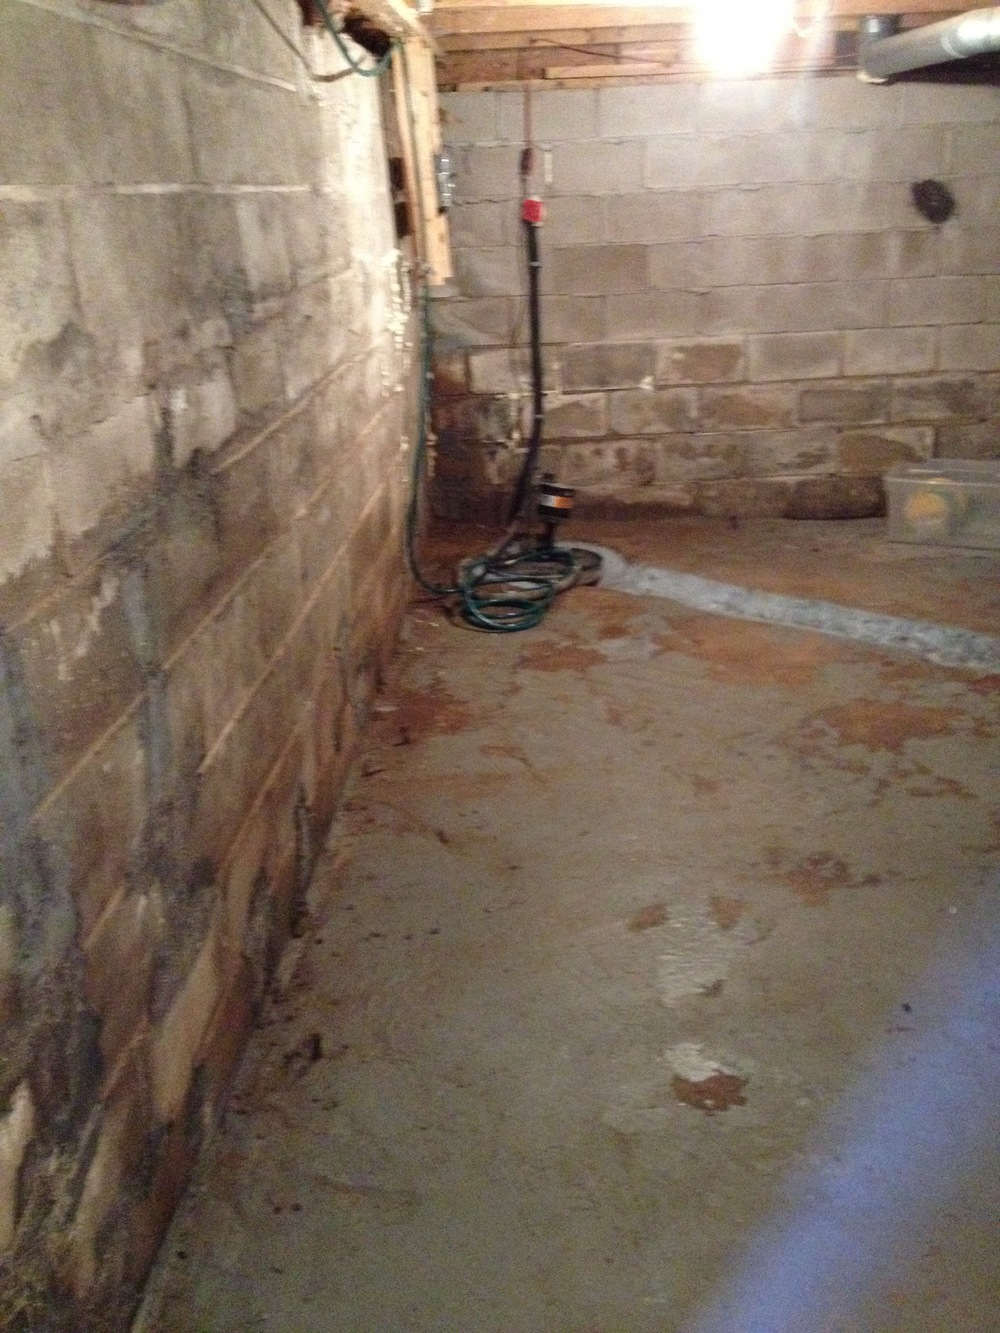 The basement walls were saturated with water prior to the reno.